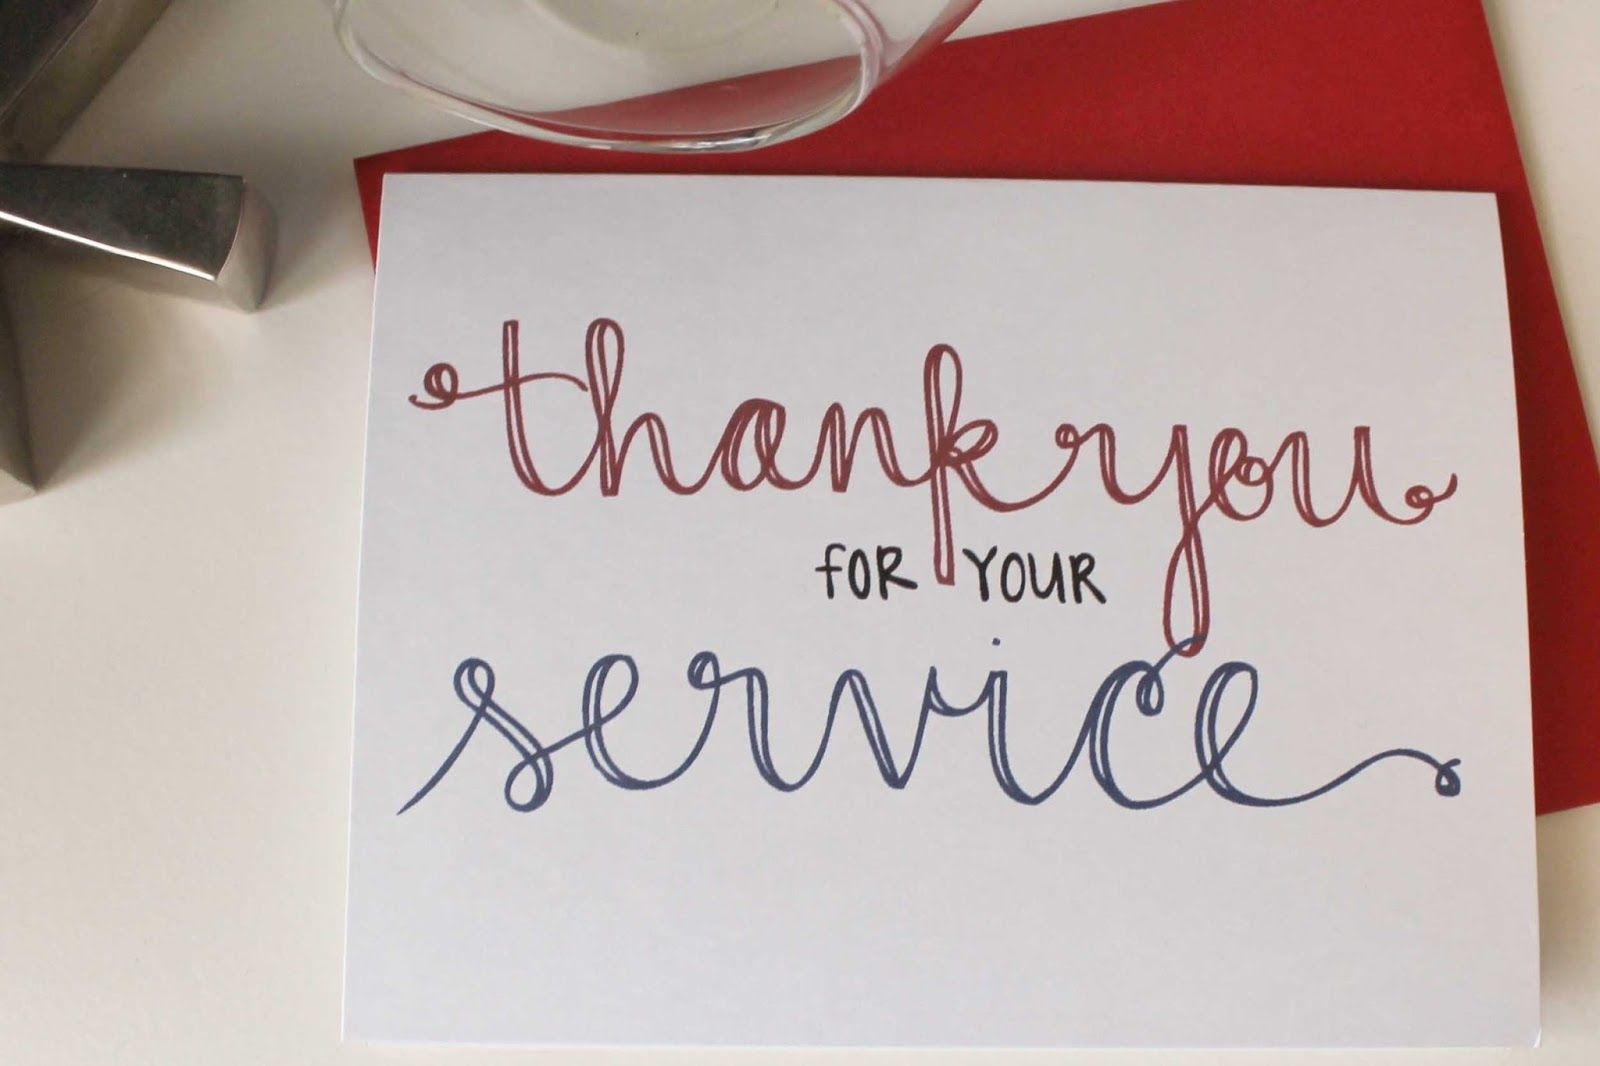 Send A Thank You Card To Our Troops   School   Veterans Day Gifts - Free Printable Thank You Cards For Soldiers